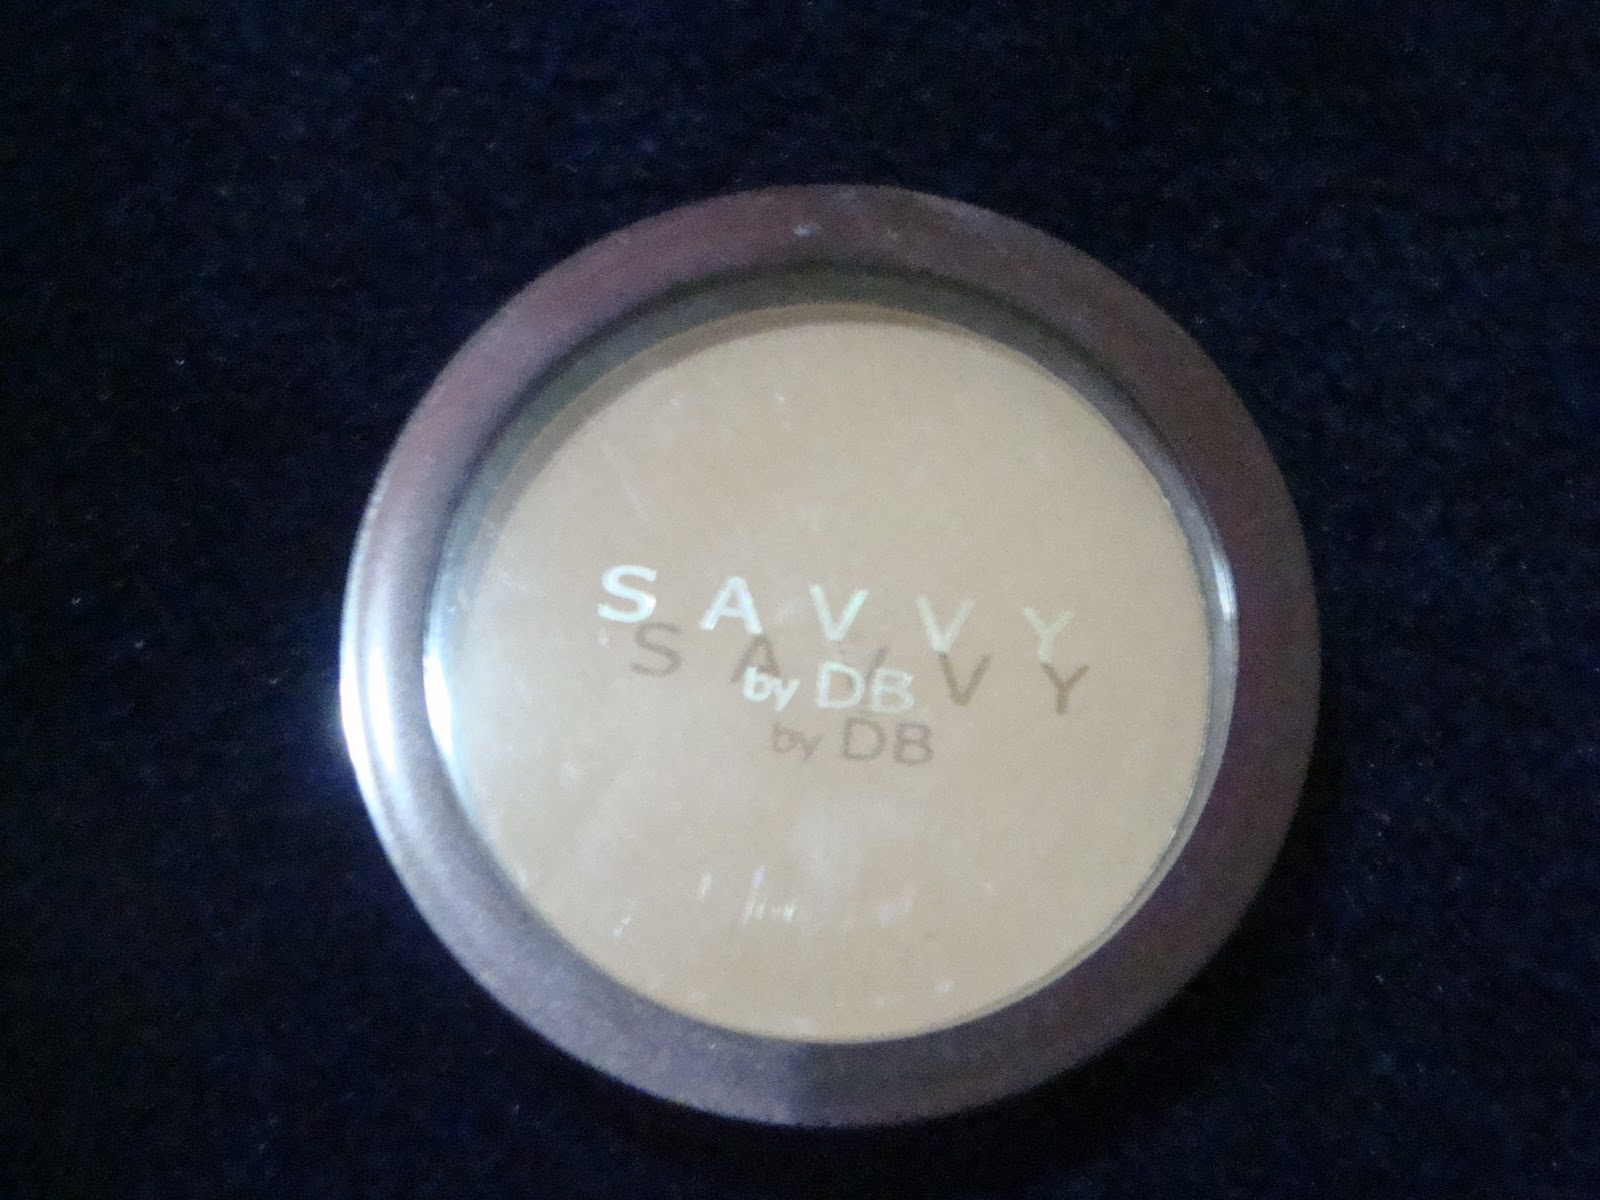 DanniiBeauty Translucent pressed powder by SAVVY by DB